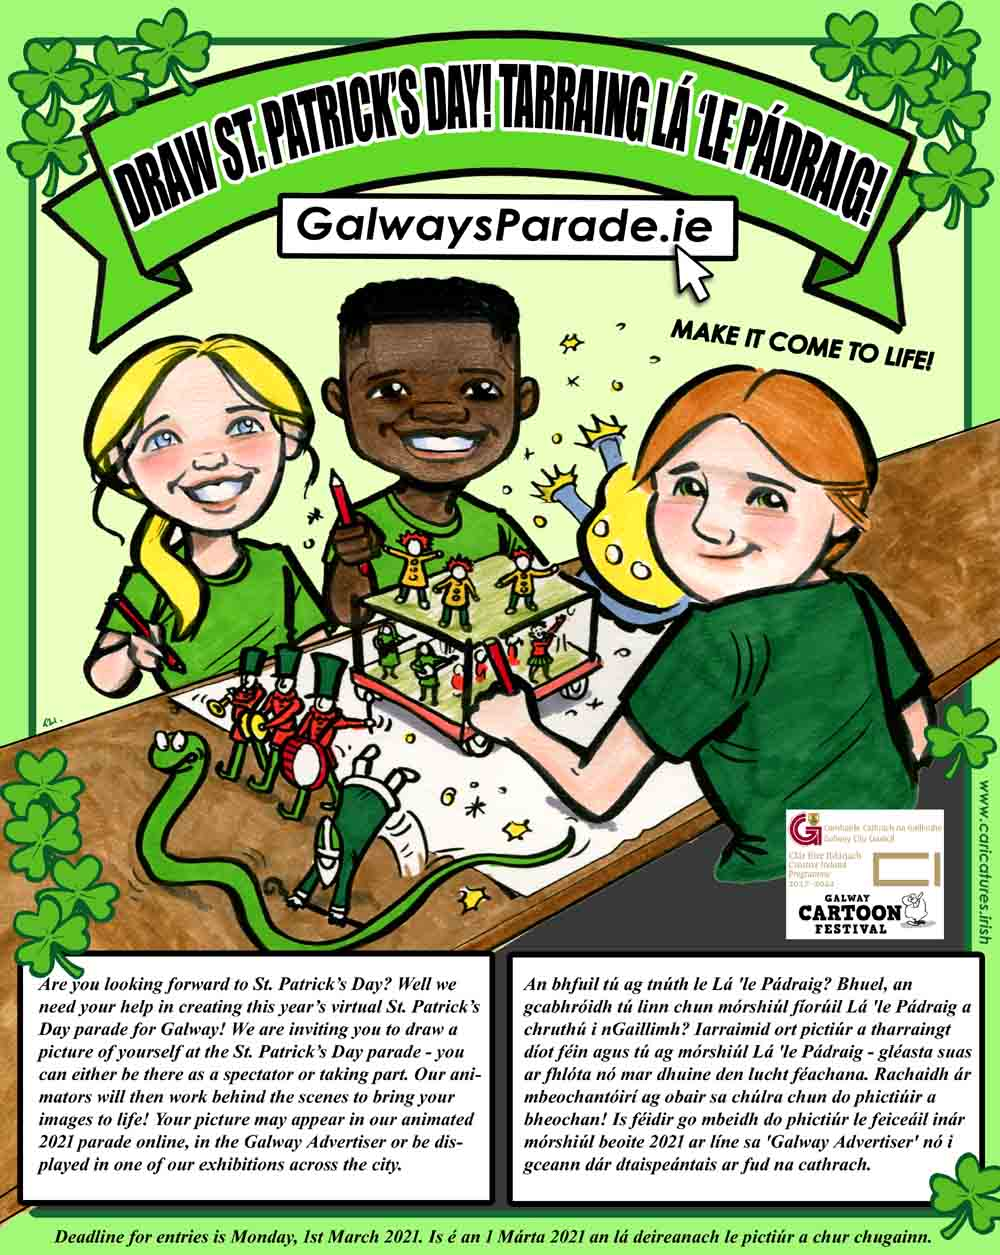 GALWAY CITY COUNCIL PATRICKS DAY